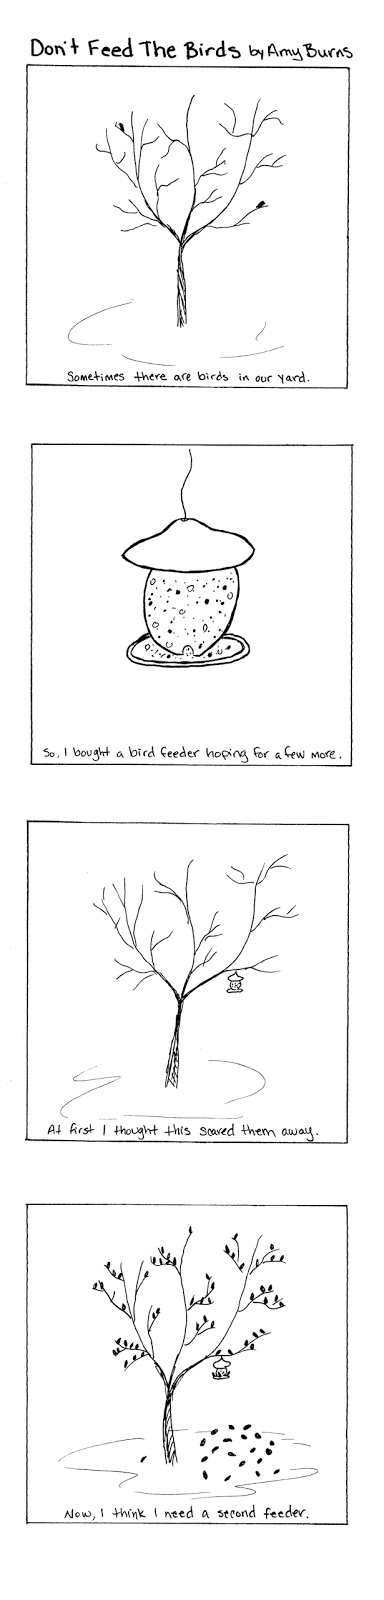 Bird Feed Comic by Amy L. Burns